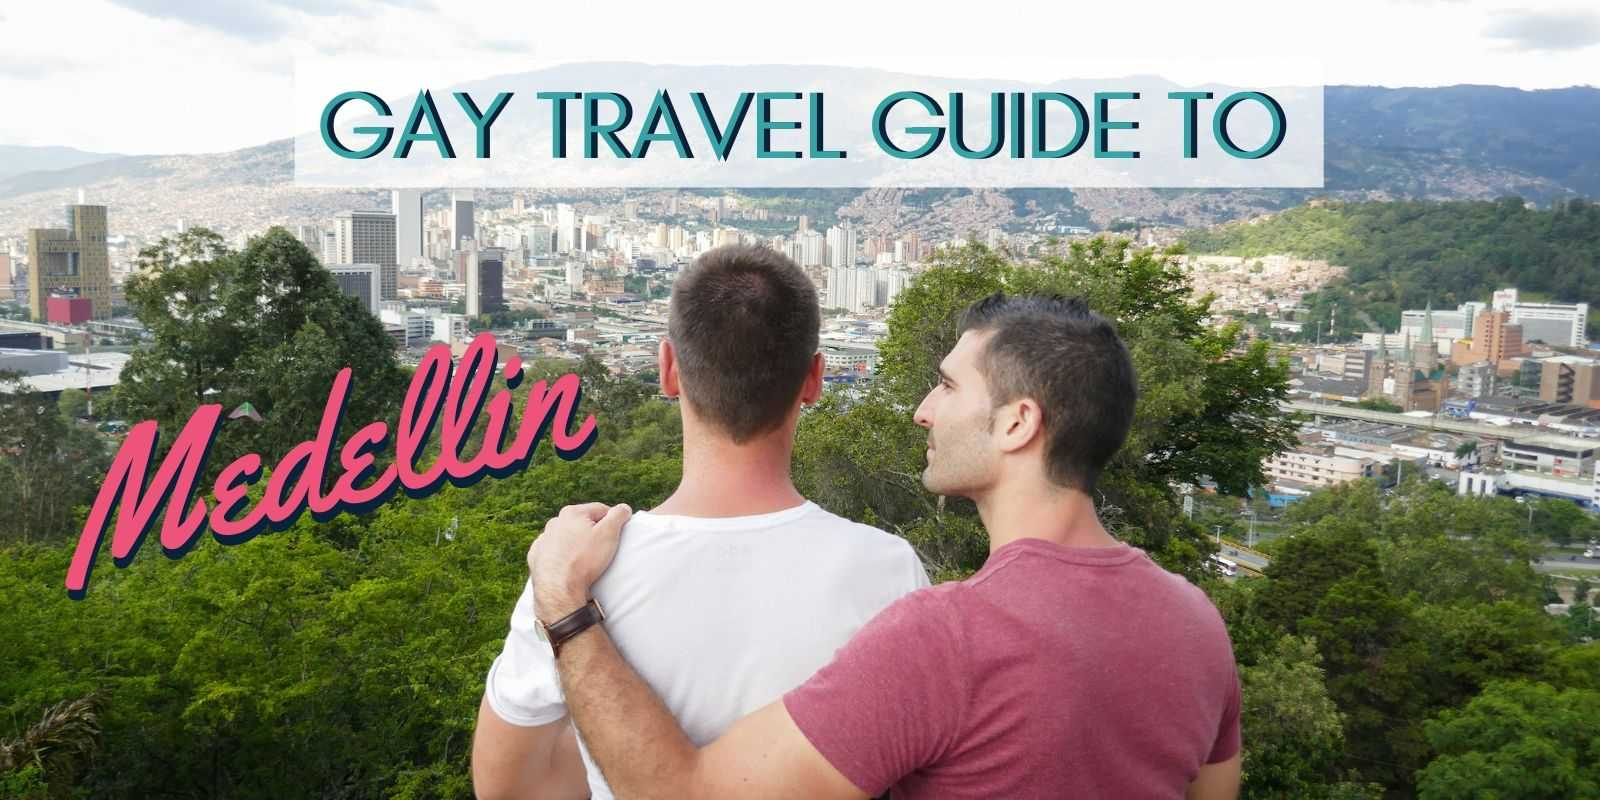 Medellin Gay Travel Guide: where to stay, eat, party